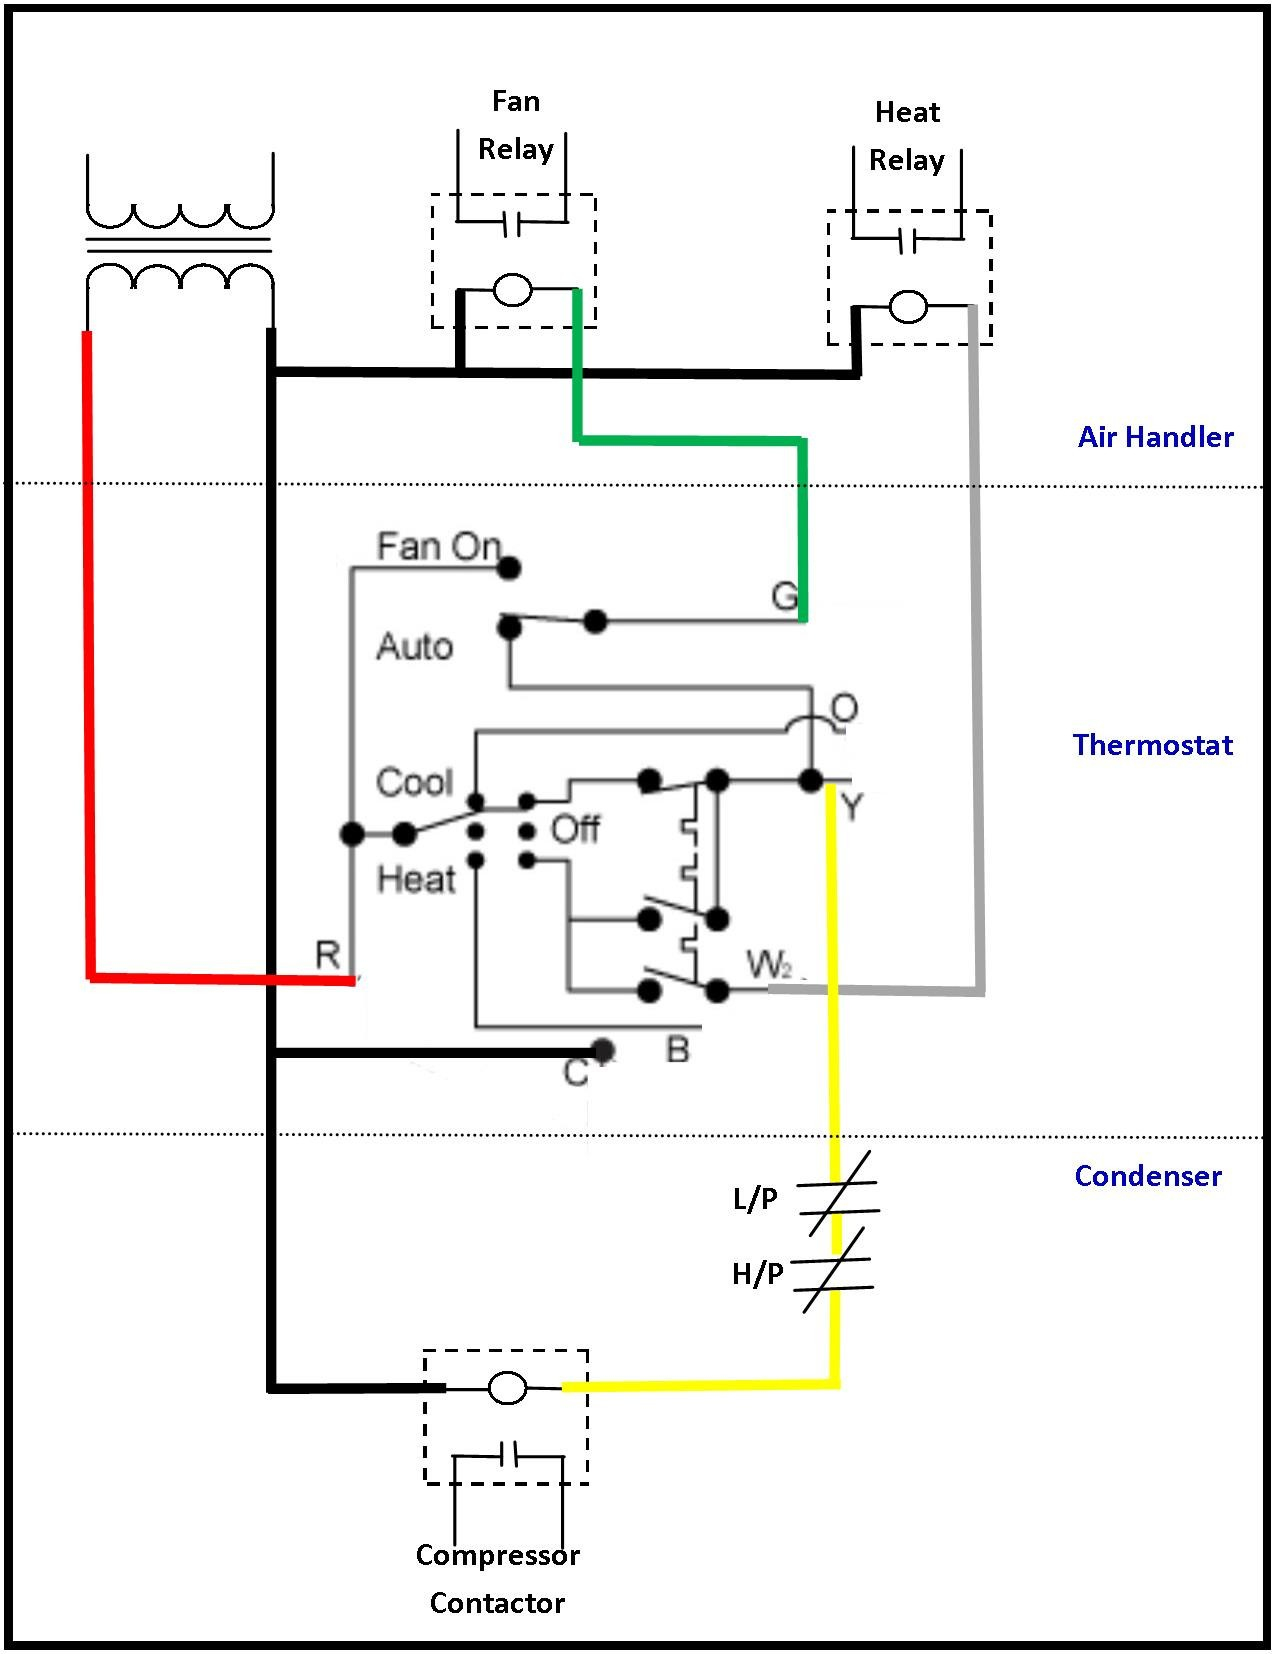 Room Thermostat Wiring Diagrams For Hvac Systems Manual Guide